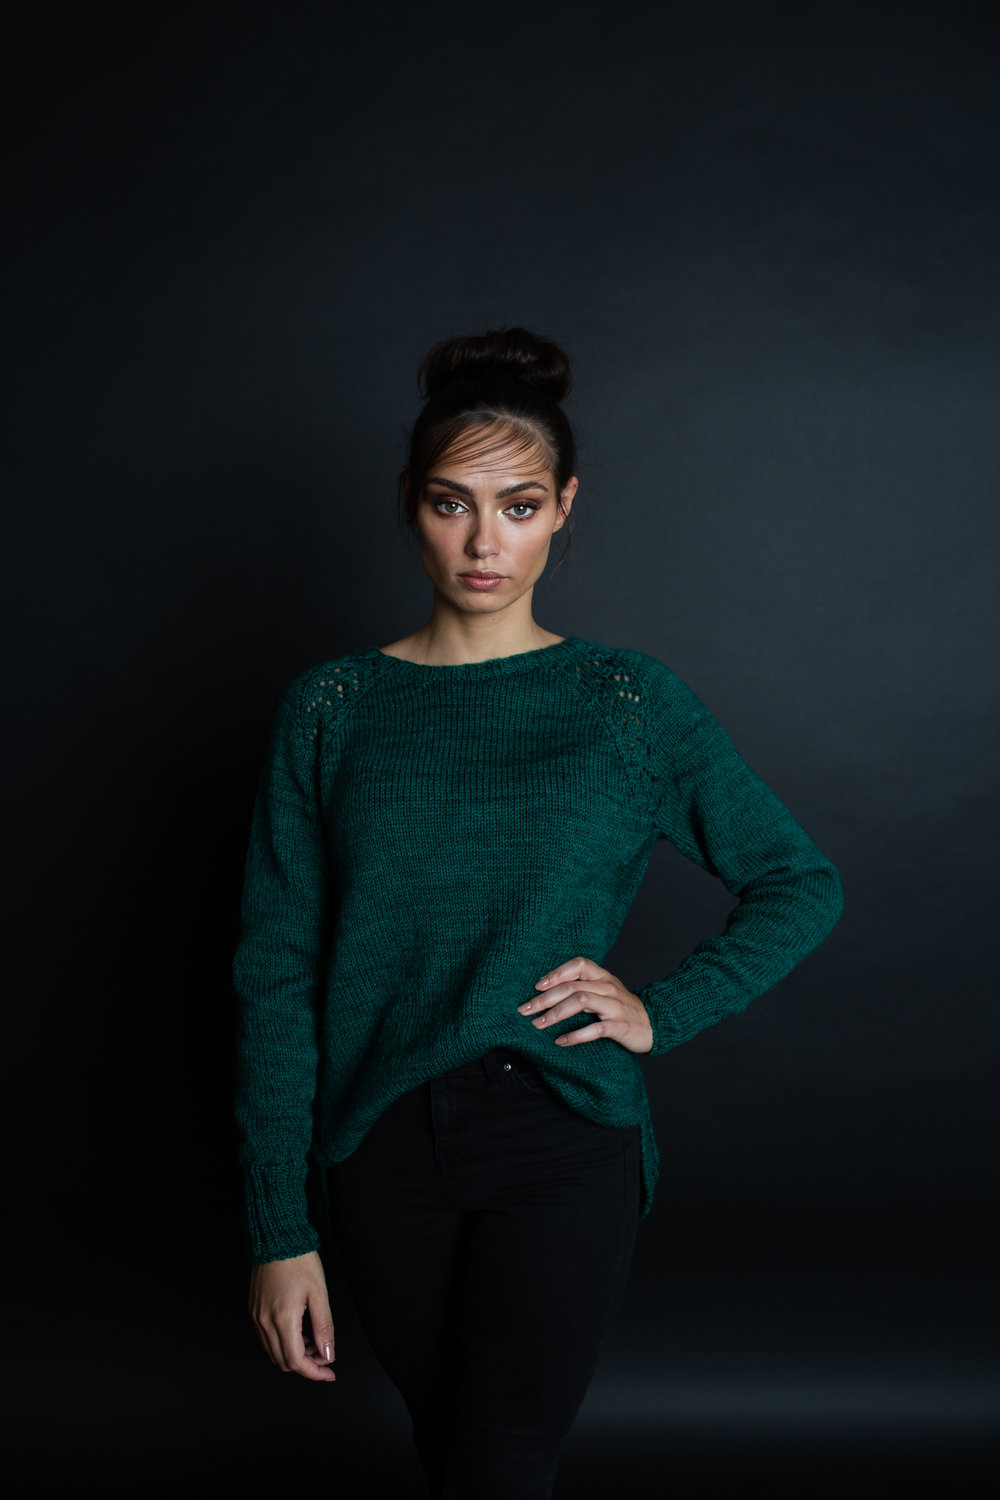 Diopside+Pullover+by+Vanessa+Ewing+for+JEWELS+by+Making+Stories.jpeg